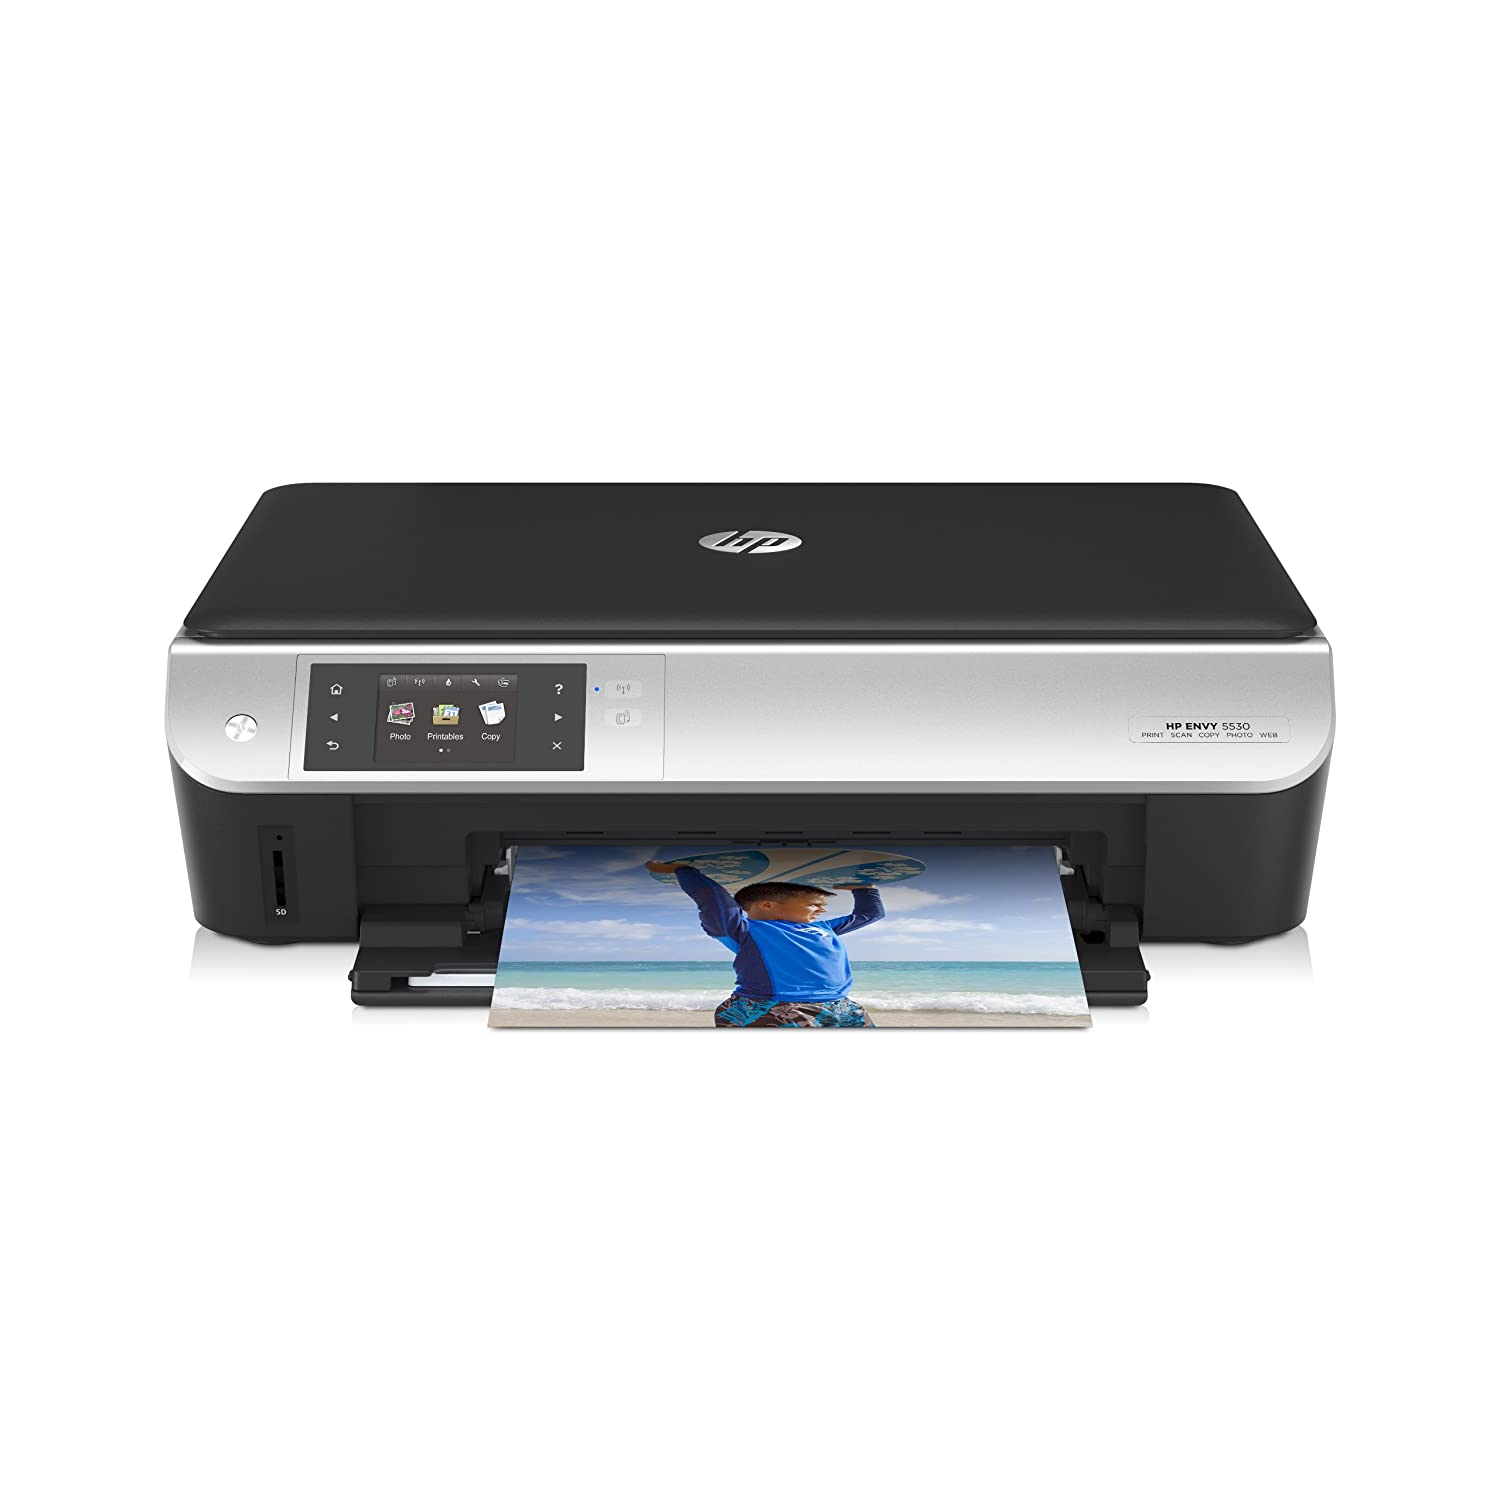 Color printouts in hyderabad - Amazon Com Hp Envy 5530 Wireless All In One Photo Printer With Mobile Printing Instant Ink Ready A9j40a Electronics